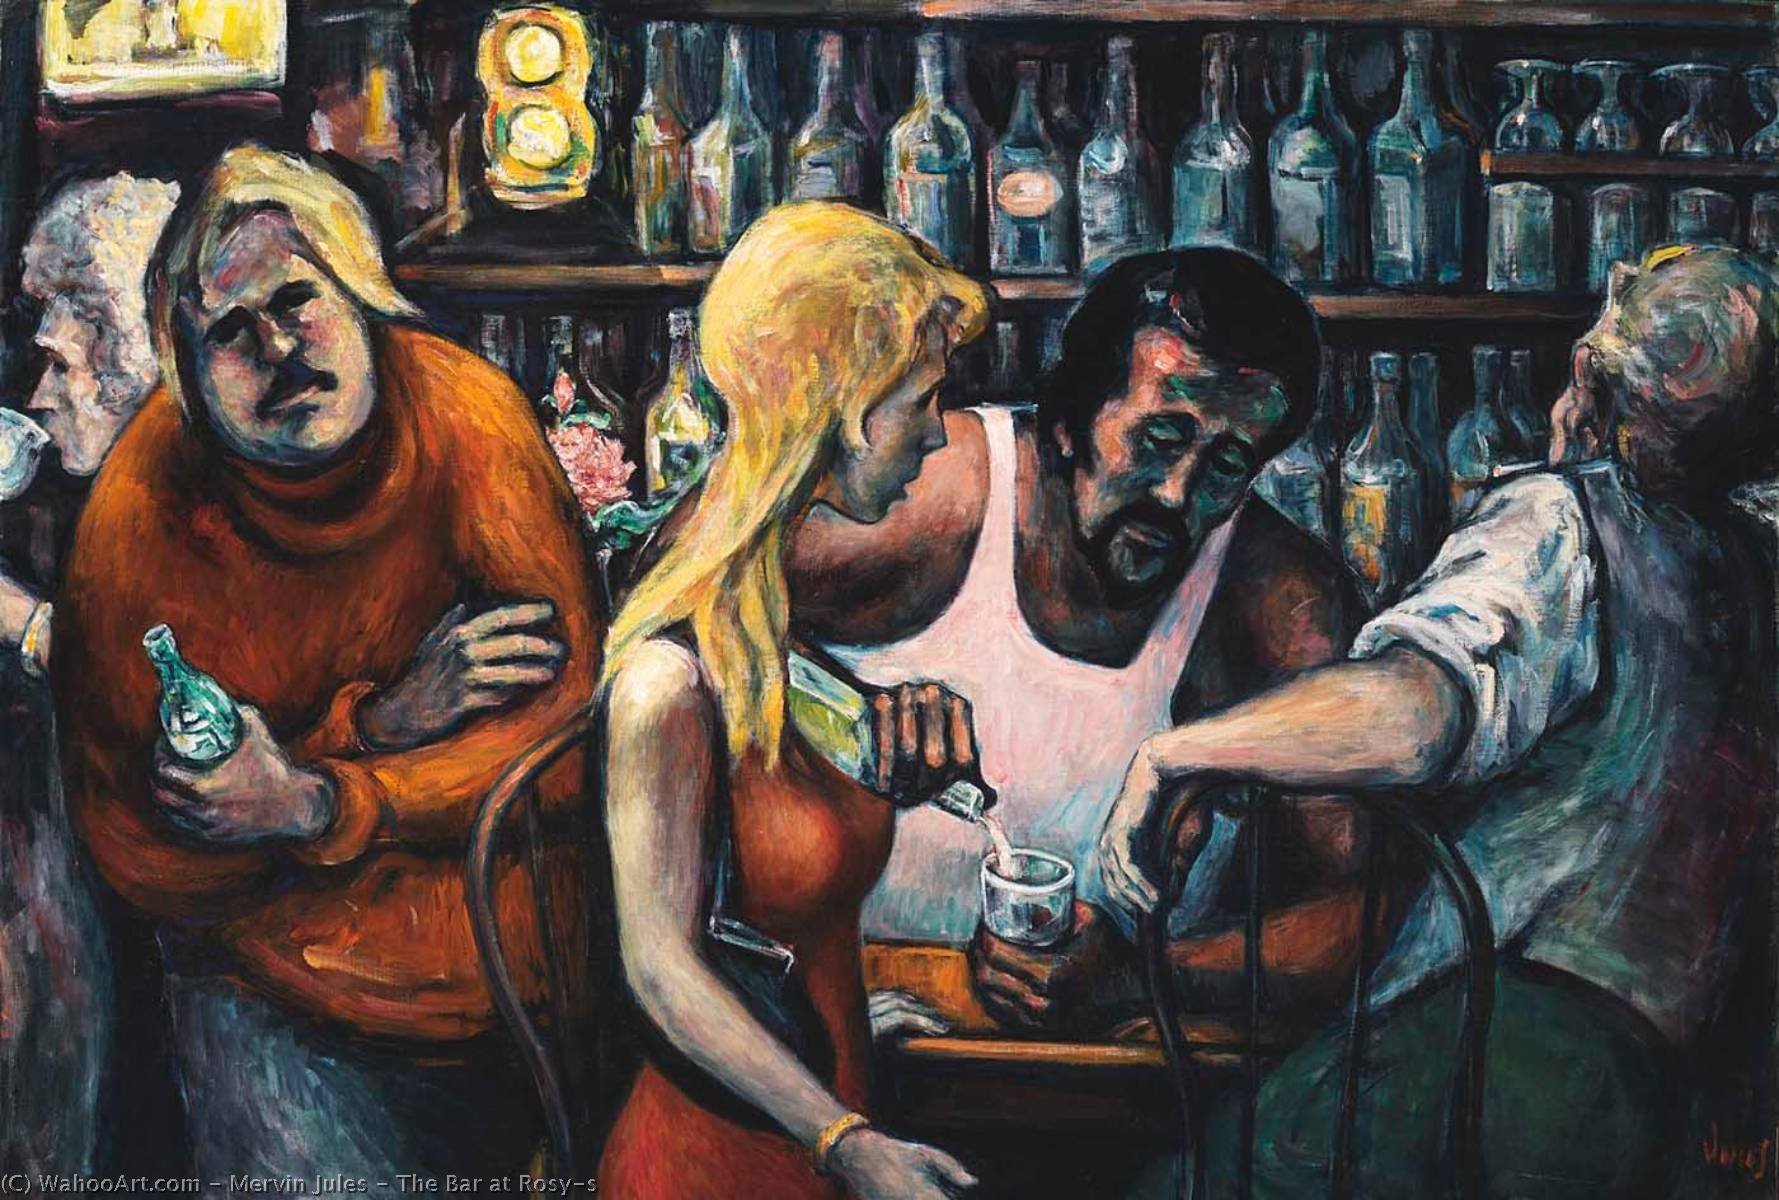 The Bar at Rosy`s, 1977 by Mervin Jules | Famous Paintings Reproductions | WahooArt.com